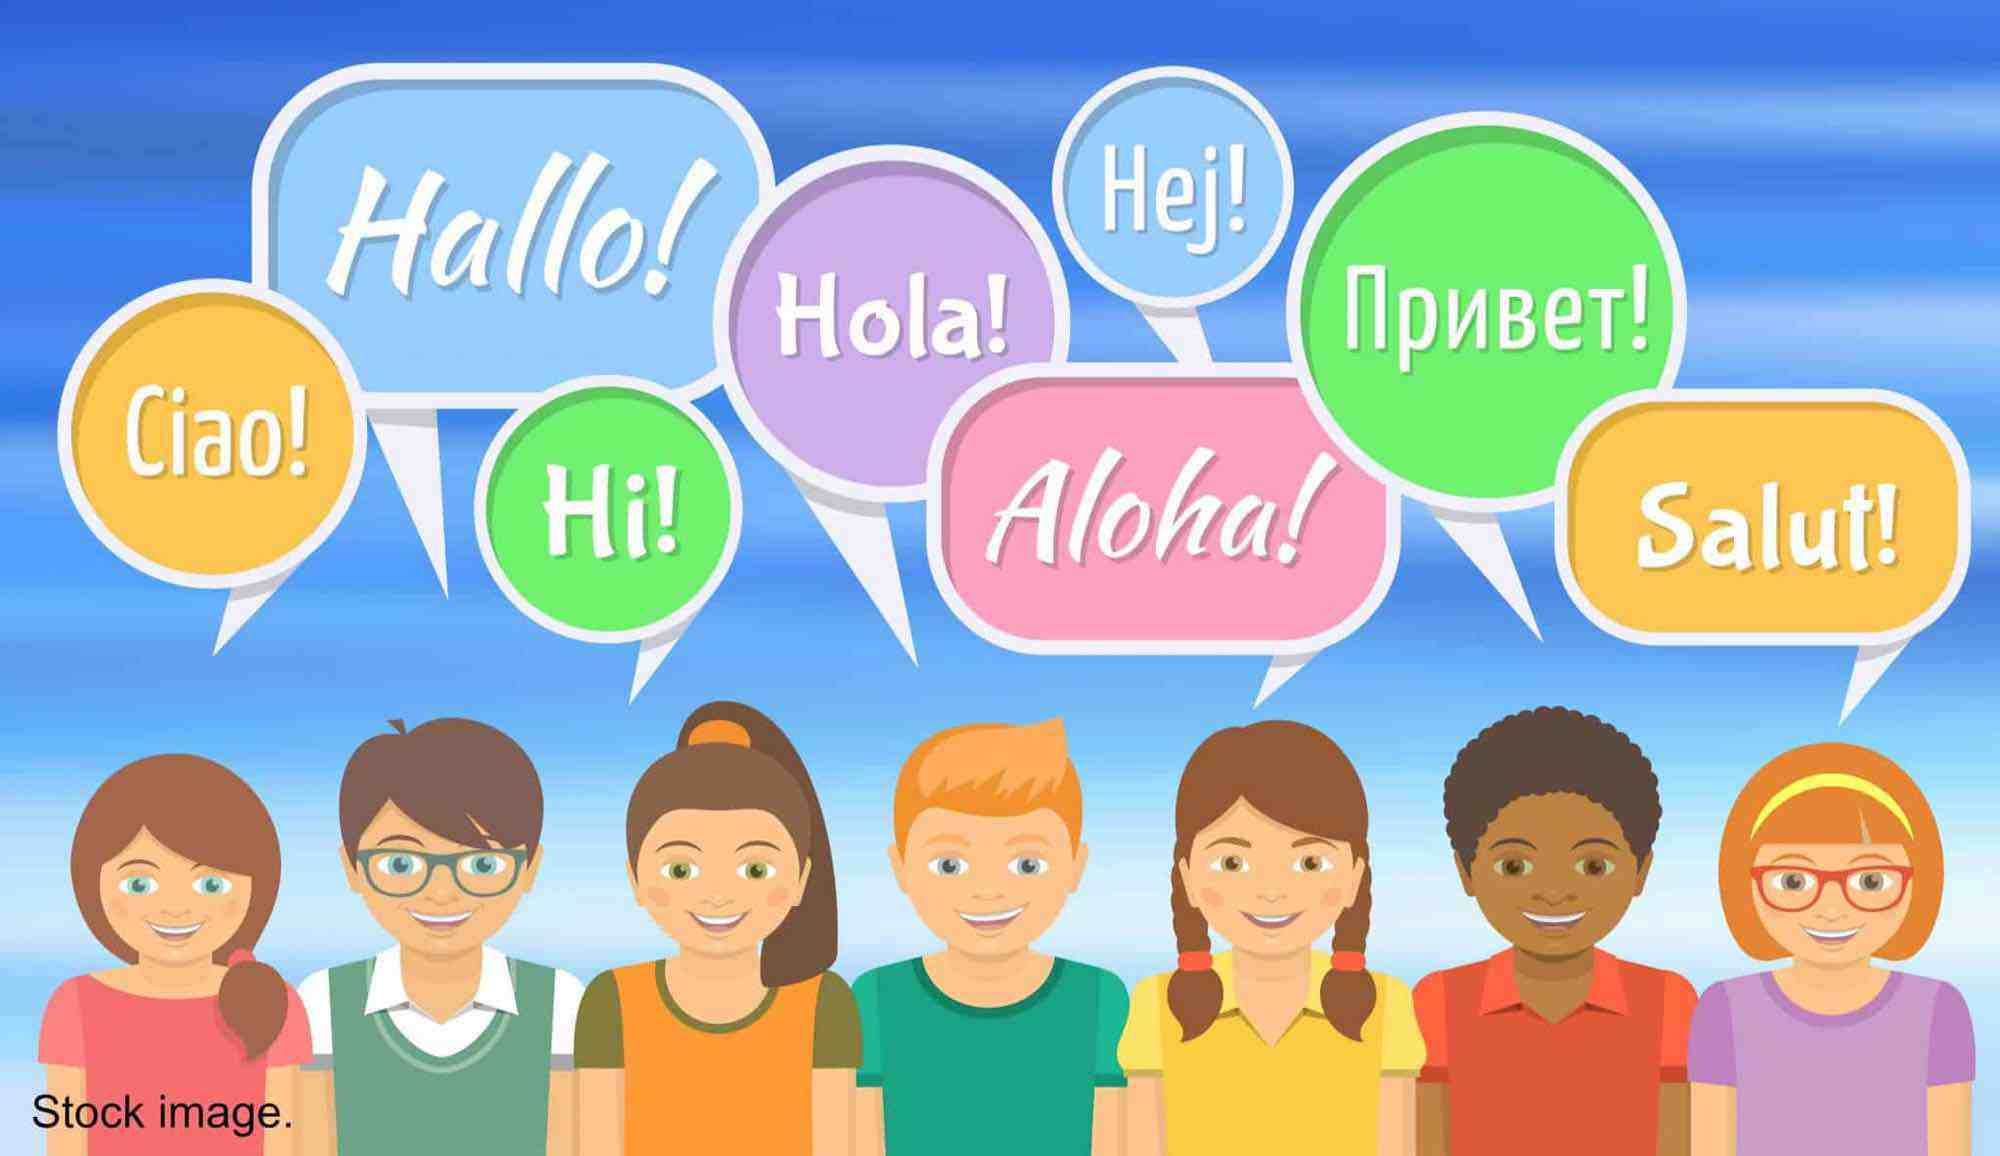 Cartoon of multicultural people saying 'hello' in their native language